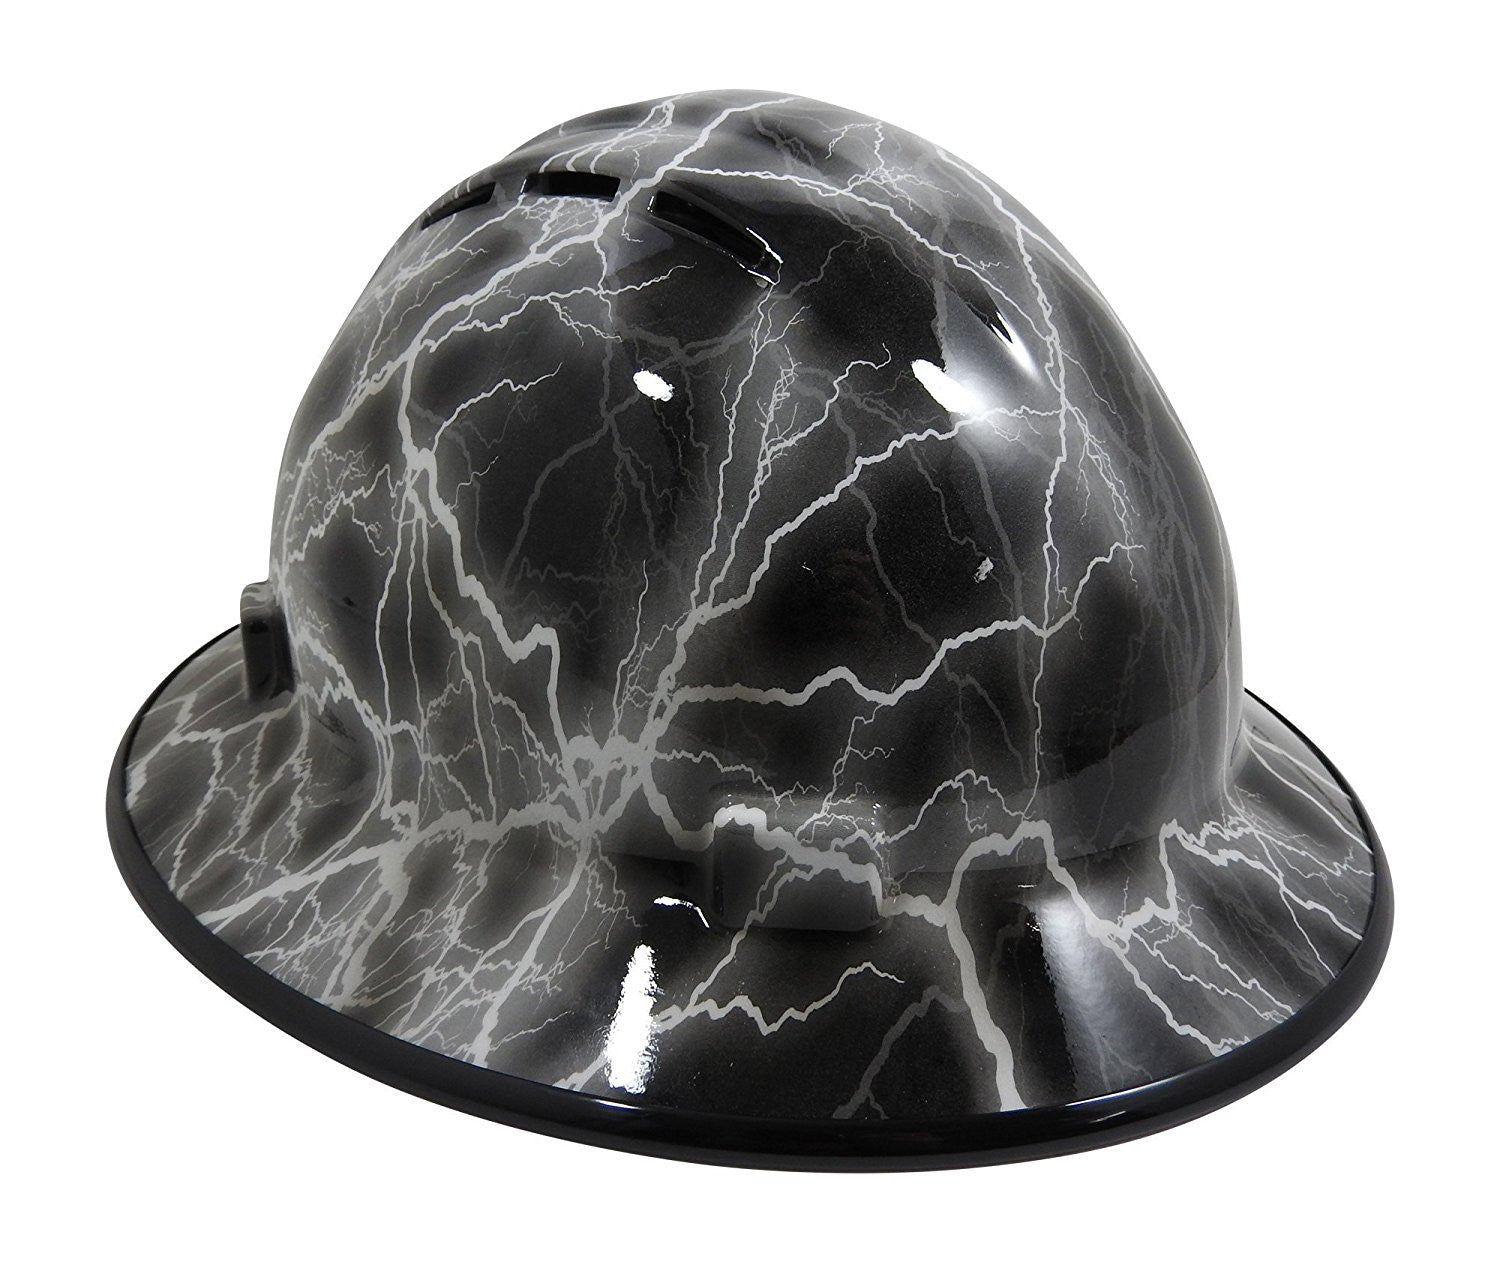 HHG Custom Vented Full Brim Hard Hat 'Lightning' – Hard Hat Gear